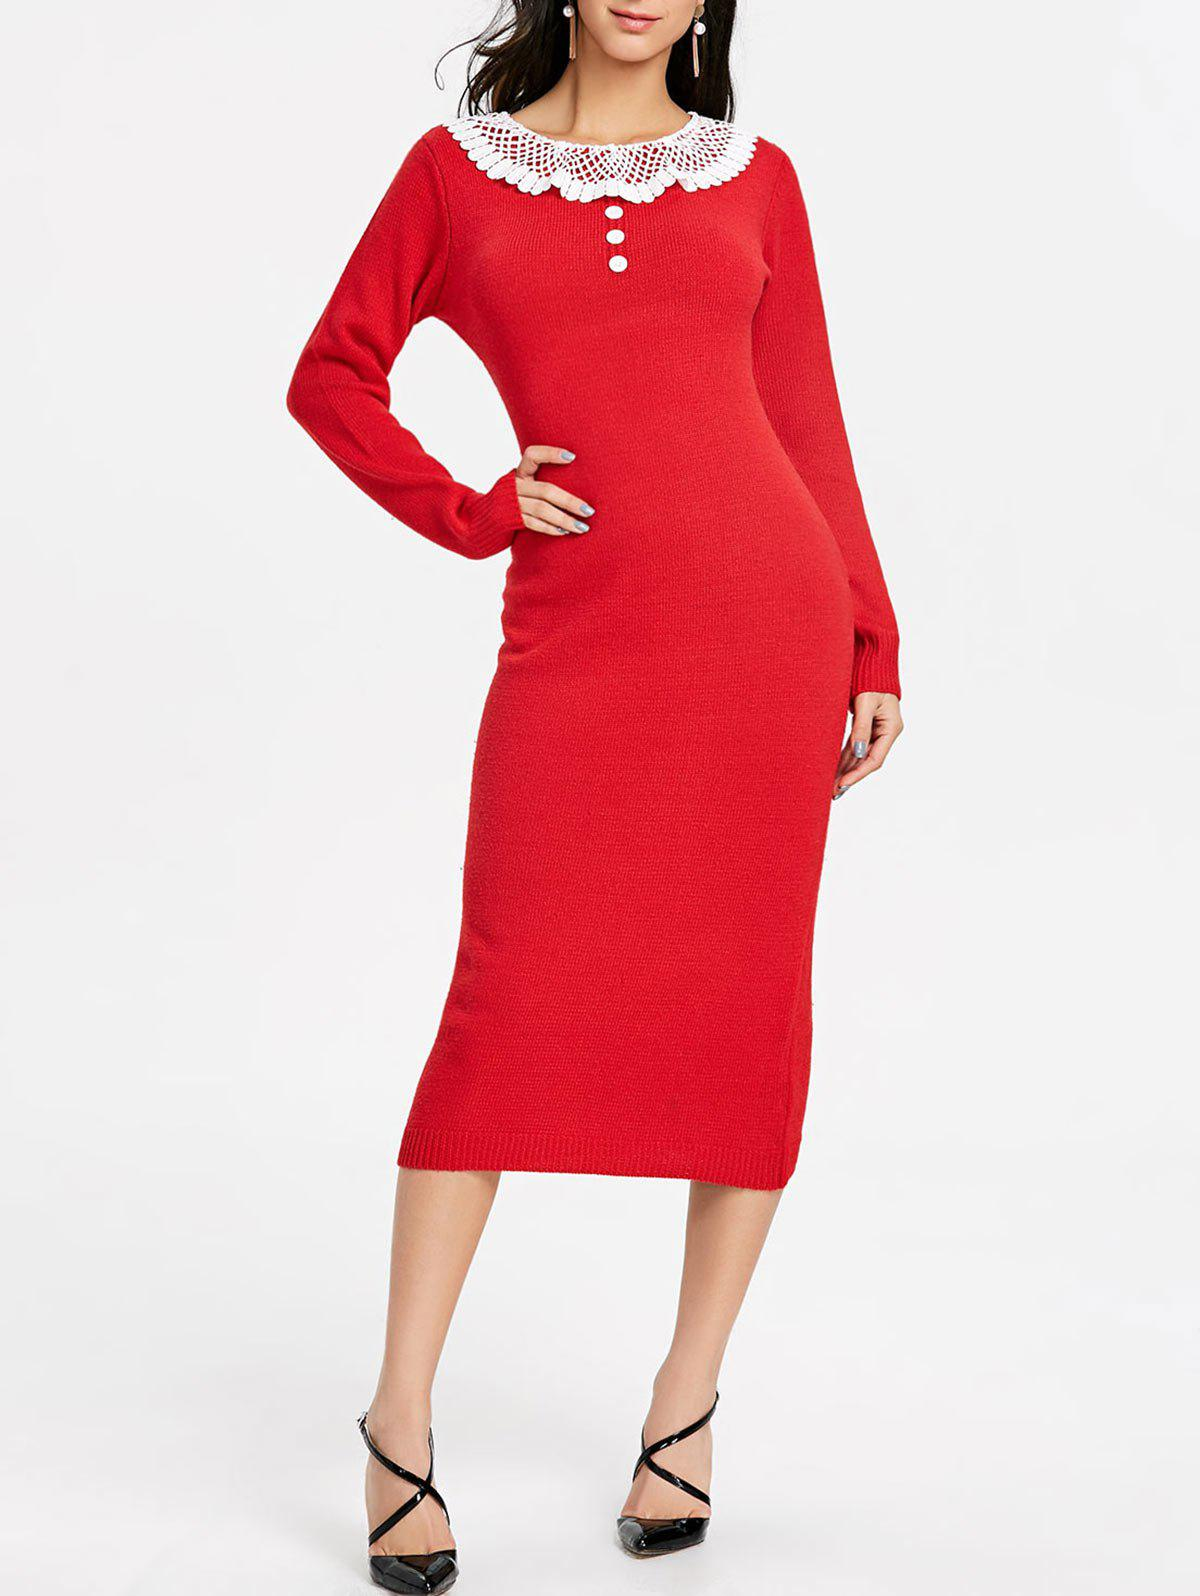 b148bbfb52f 2018 Midi Bodycon Sweater Dress In Red One Size